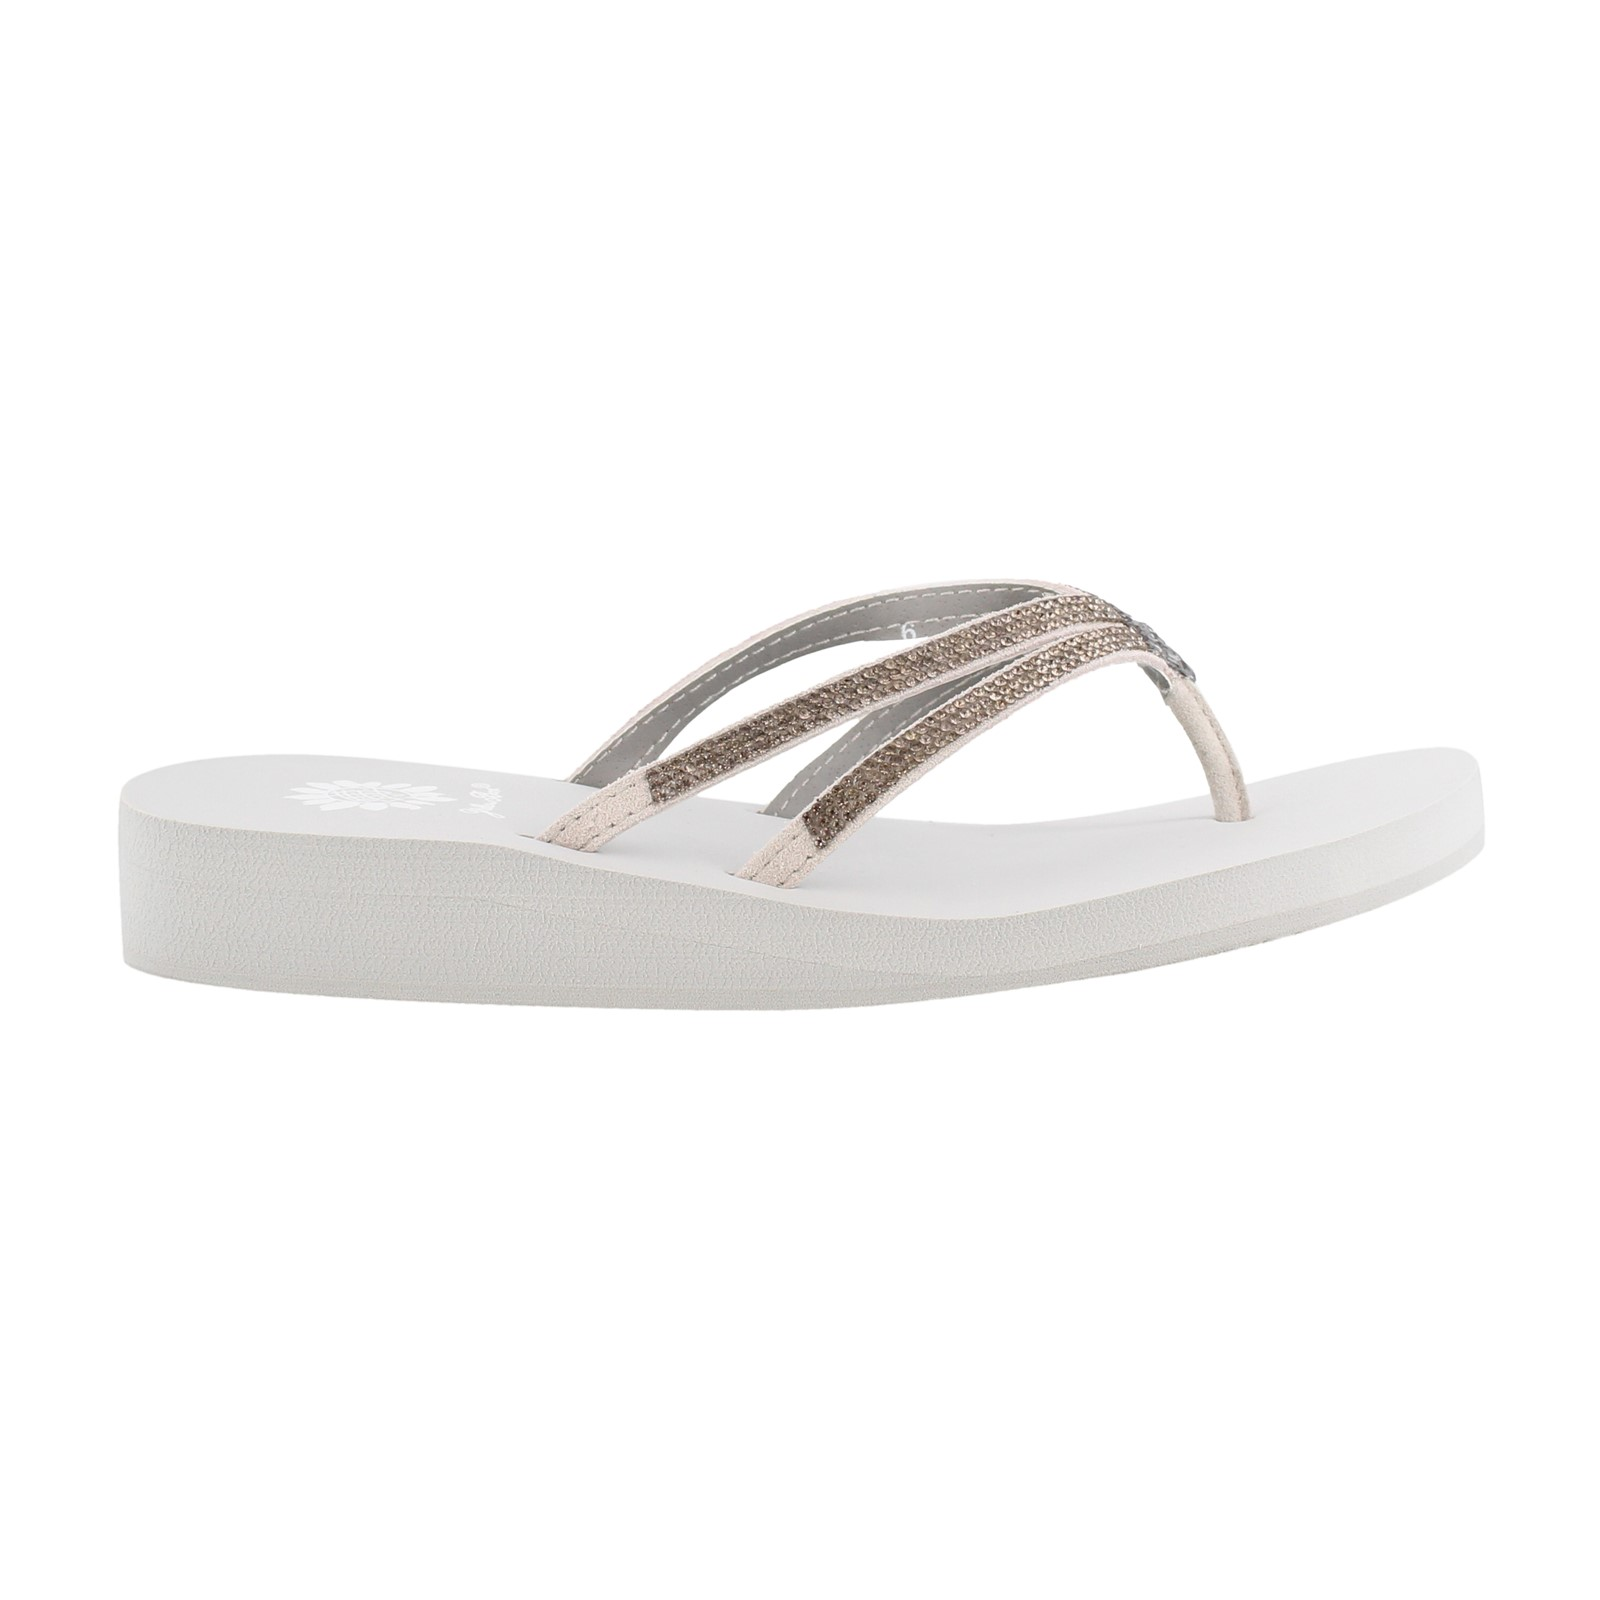 Women's Yellowbox, Katleen Sandals